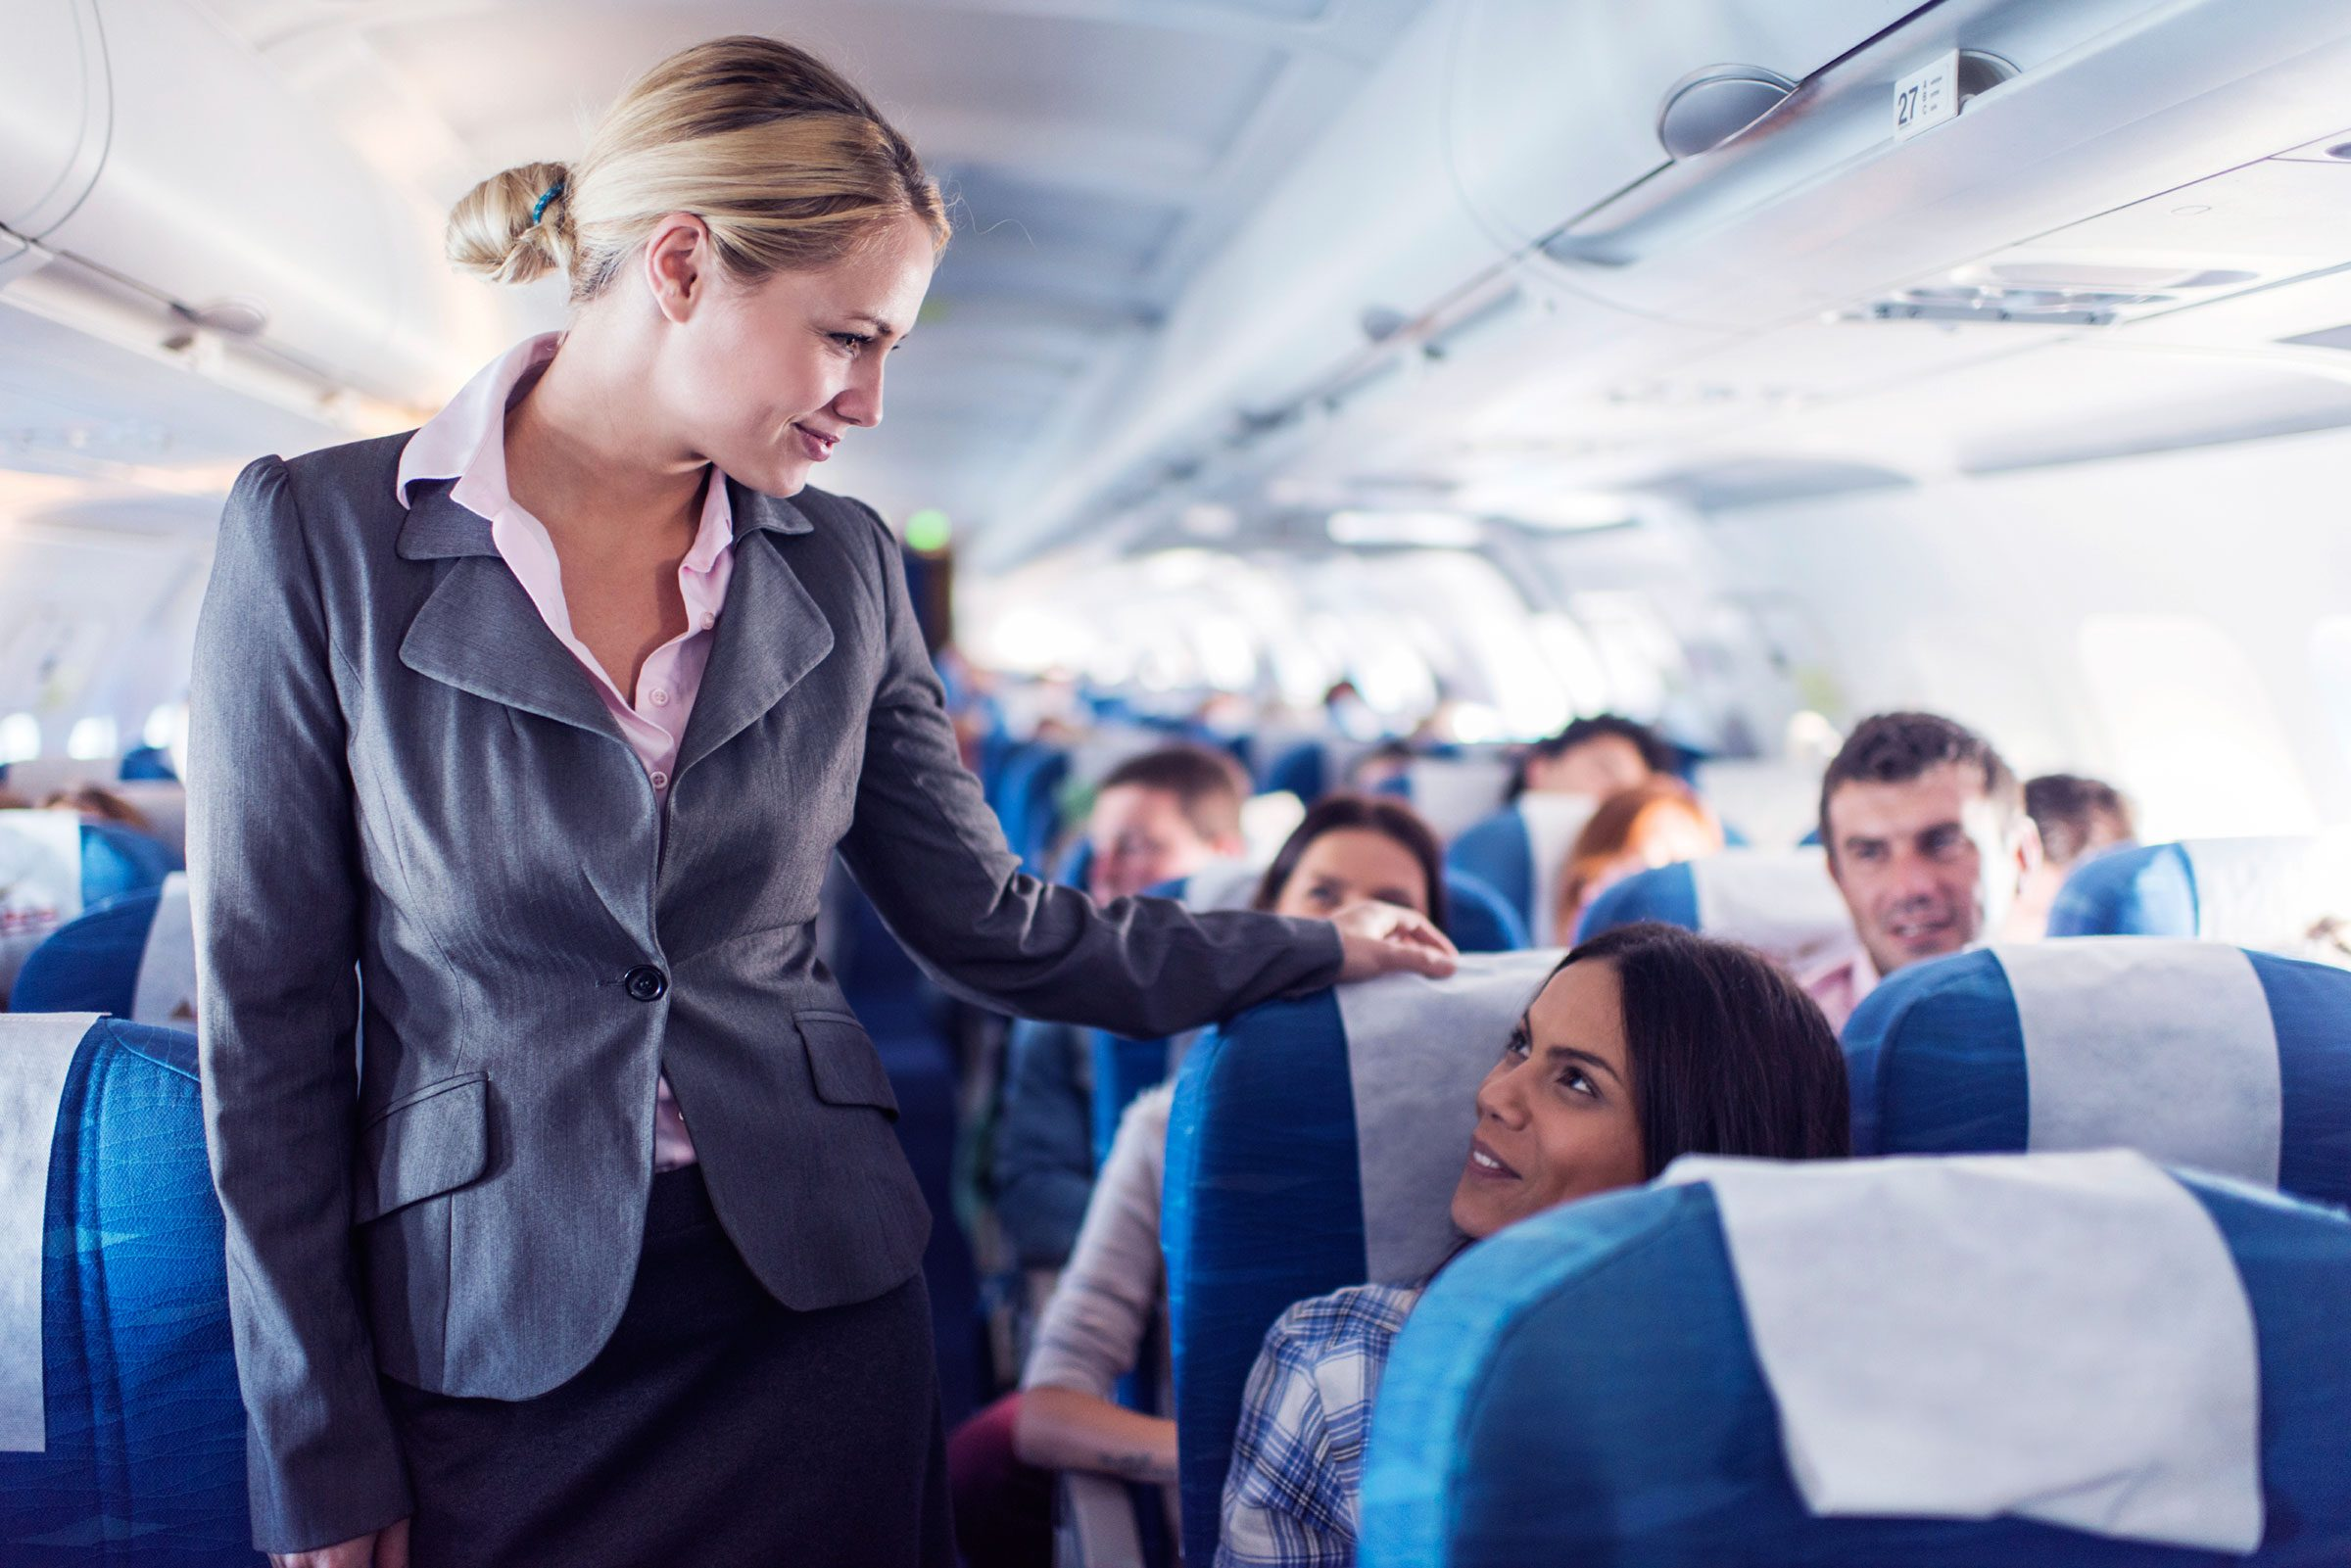 2. Yes, passengers are incredibly rude...